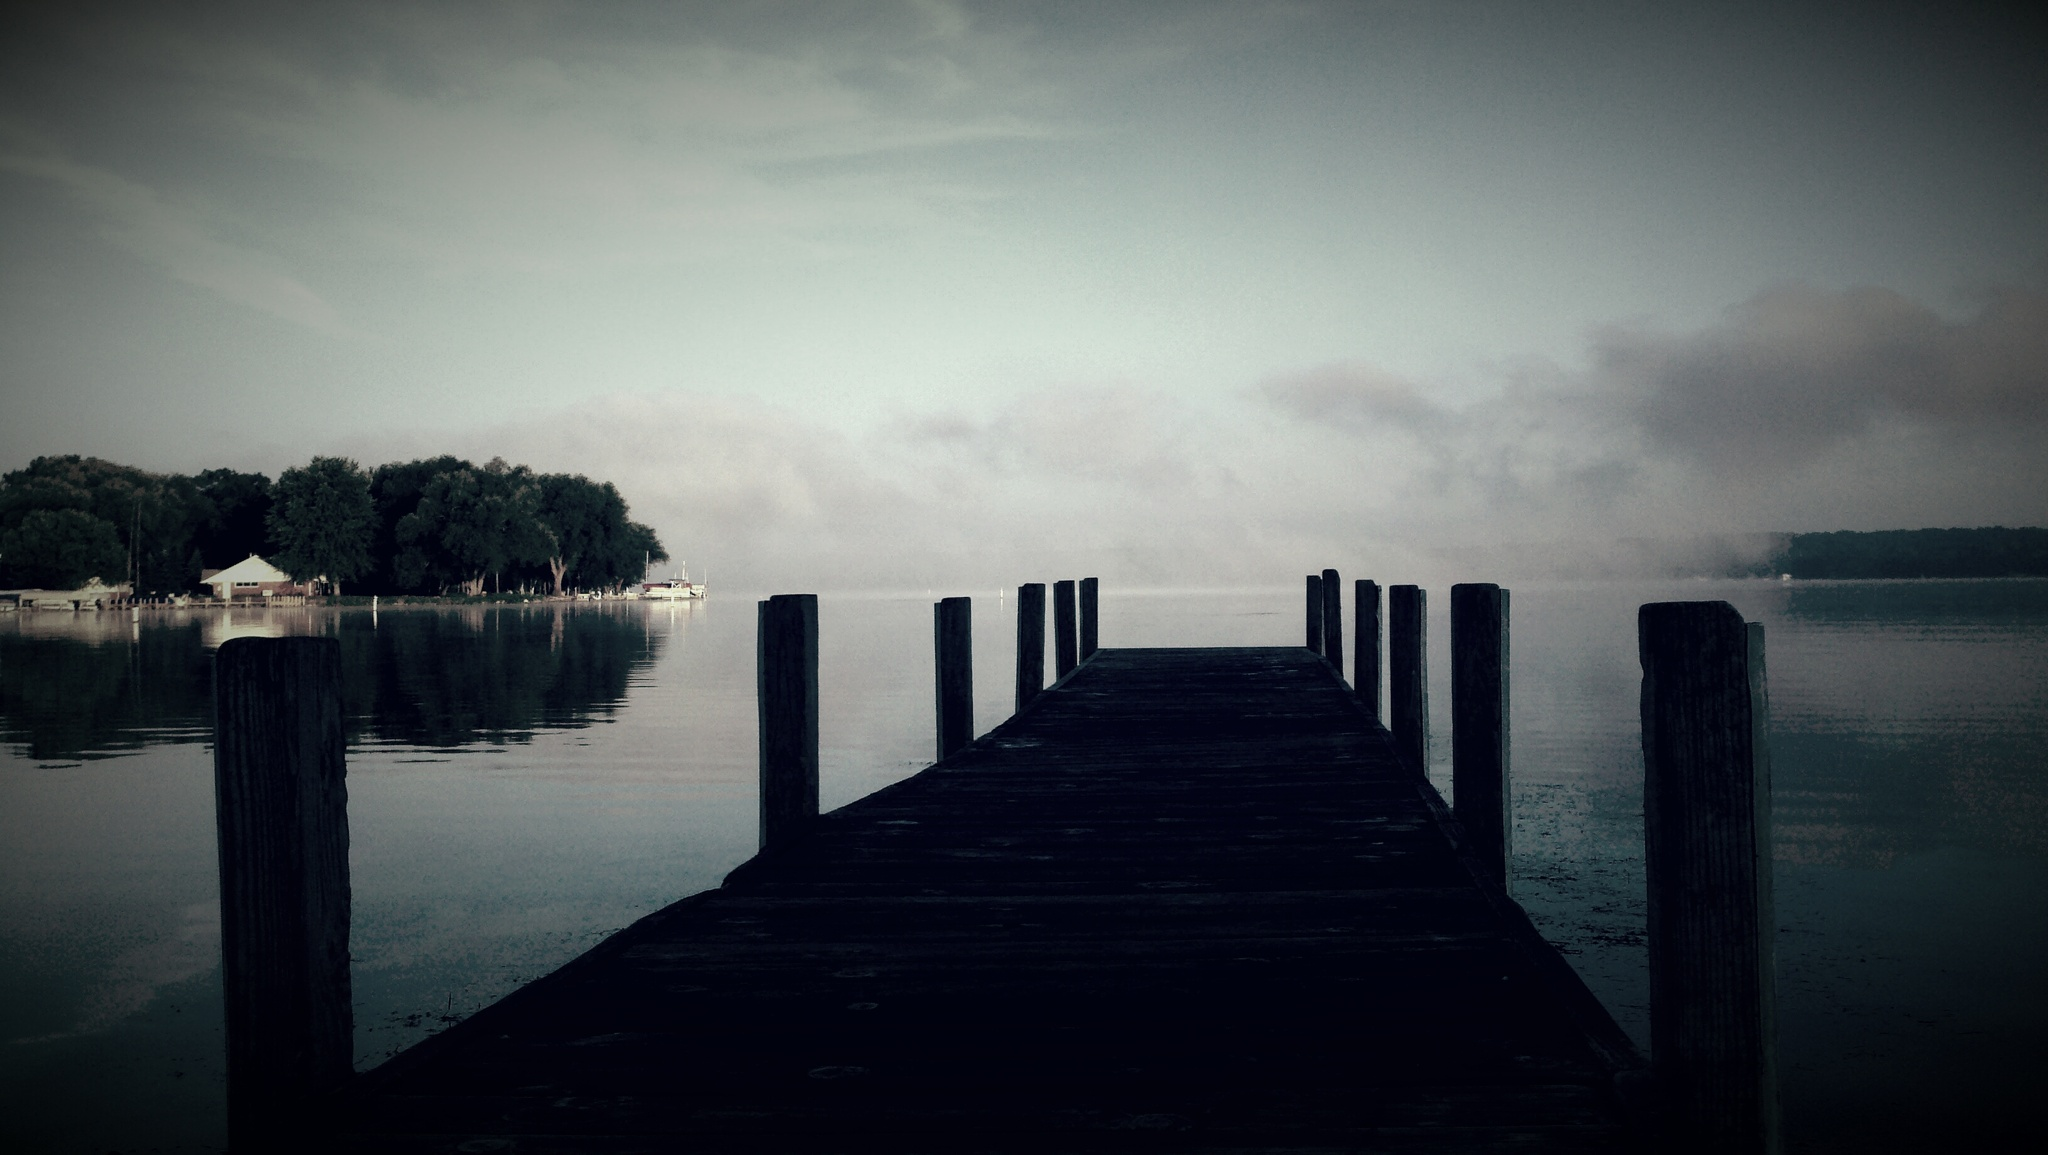 sittin on the dock of a bay by Kathsdecor